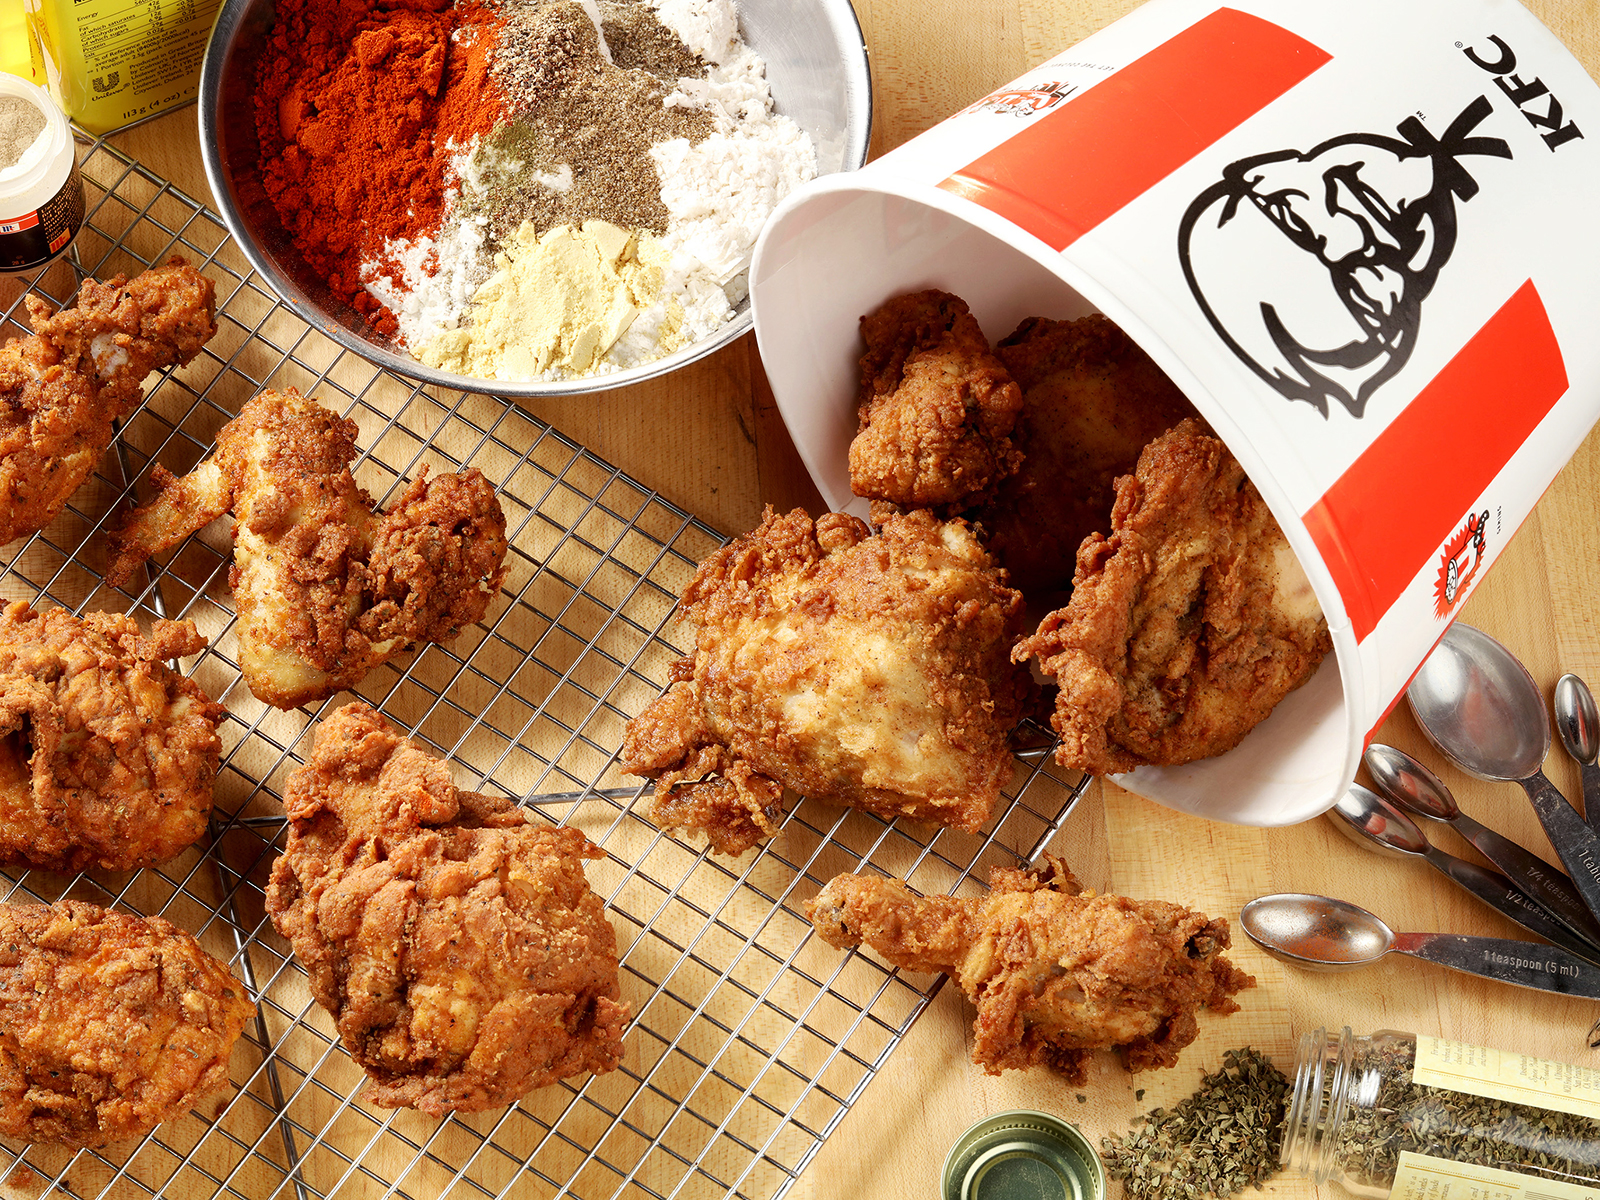 KFC Japan Released a Low-Odor Fried Chicken to Make Subway Cars Less ...